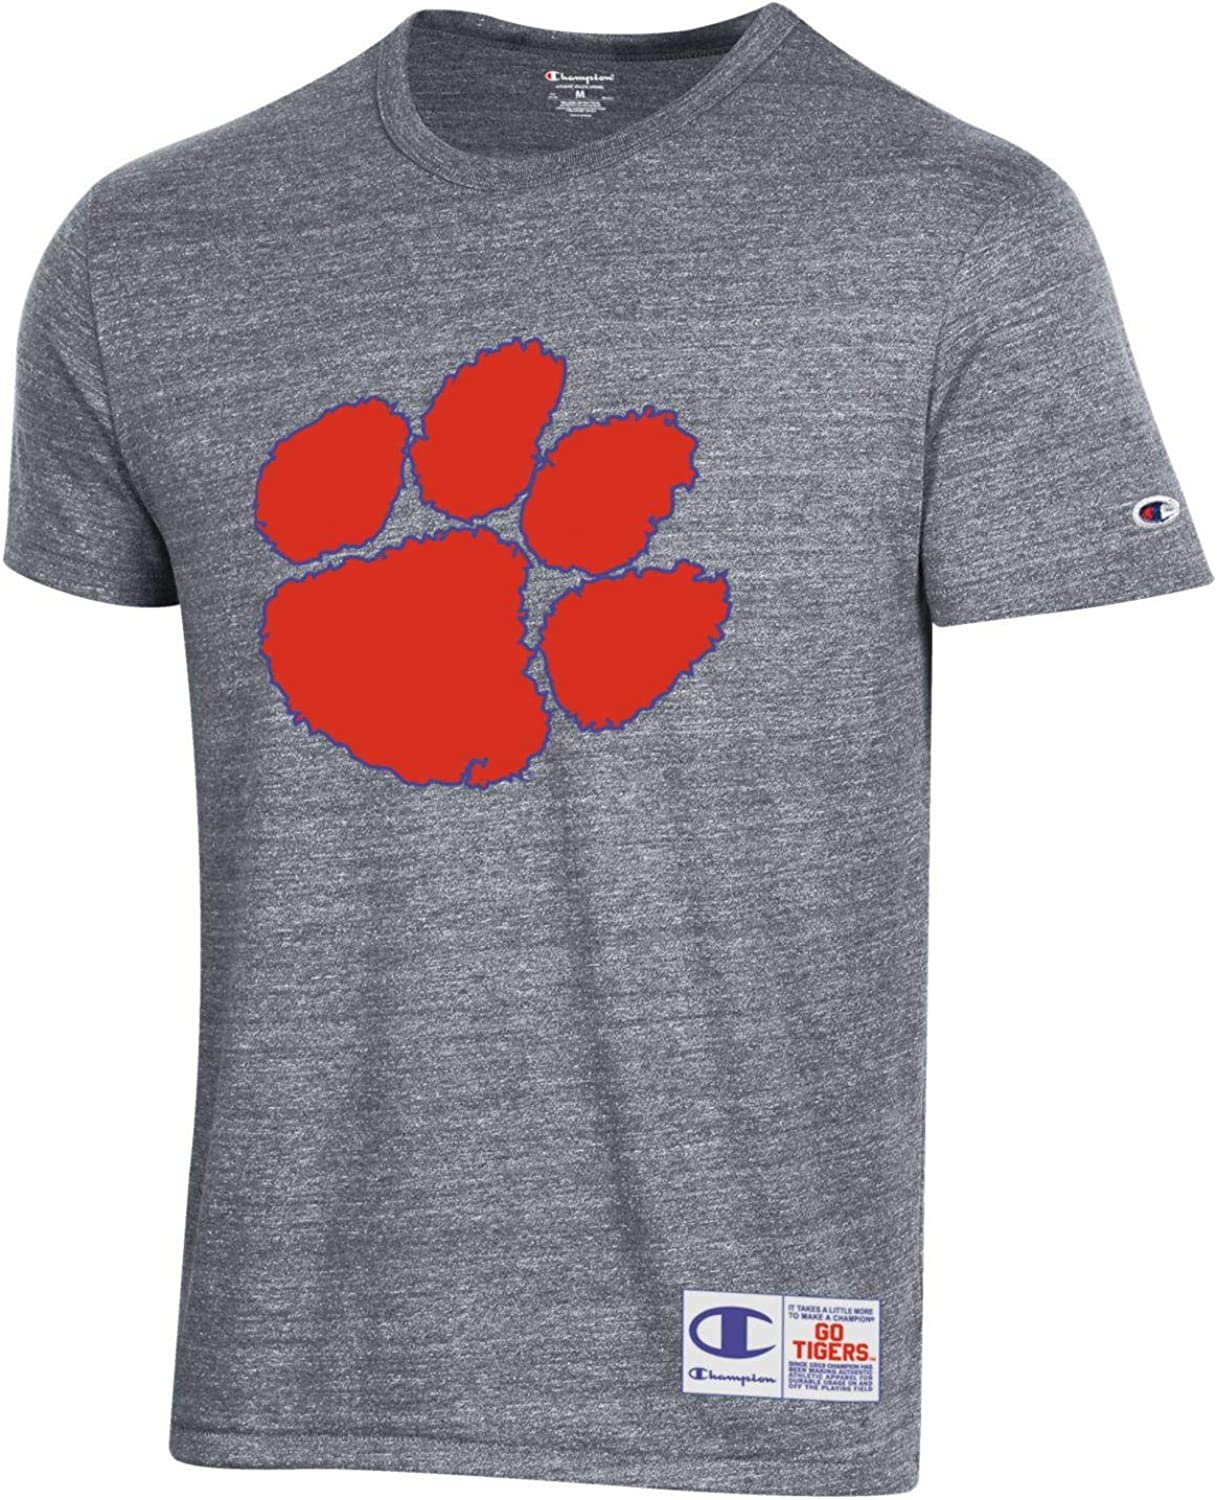 Champion Max 74% OFF NCAA Men's Retro Ultimate with Sch T-Shirt Triblend Old 5 popular